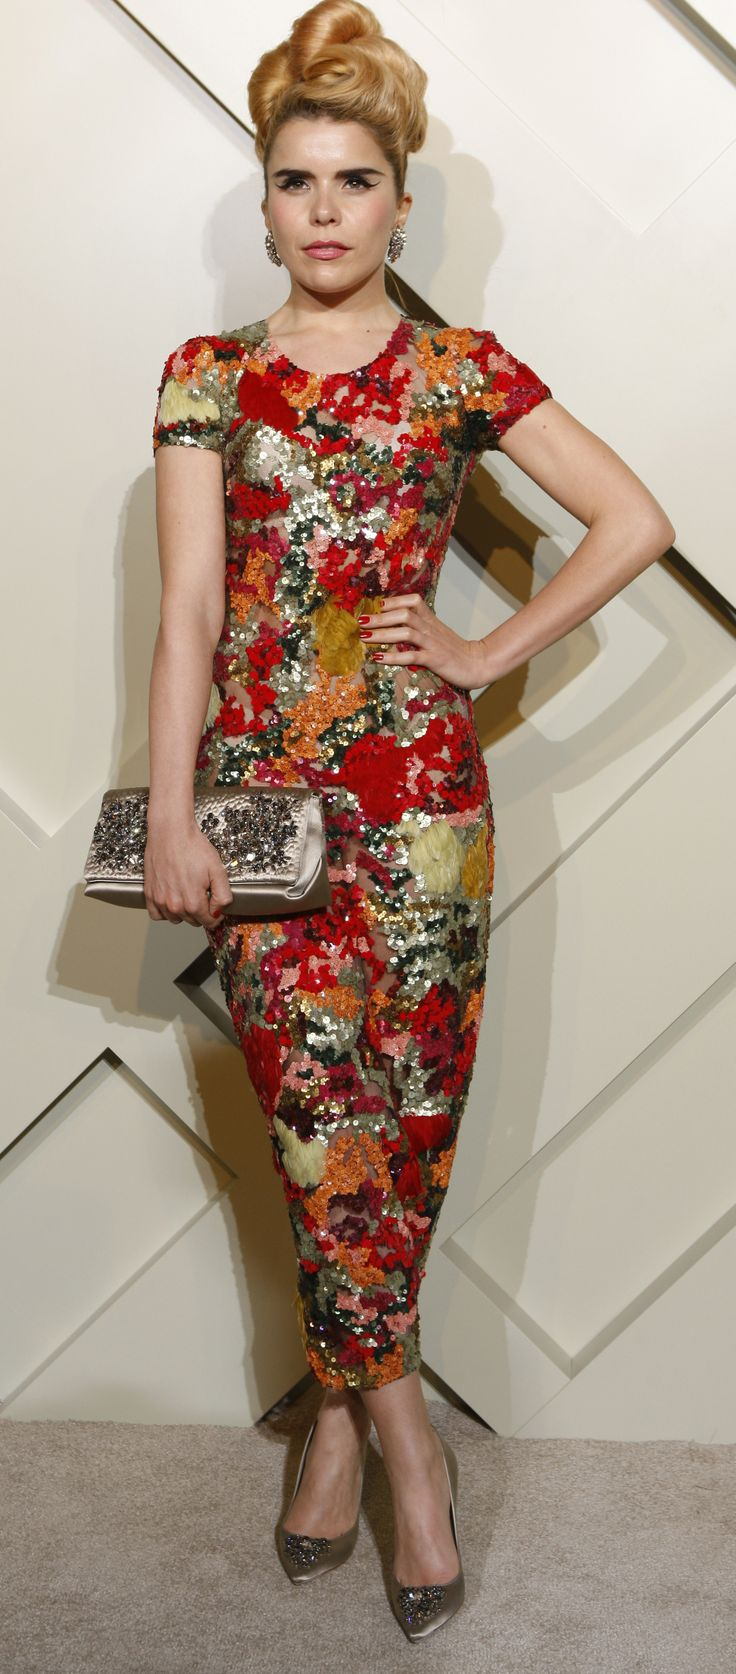 British musician Paloma Faith wearing Burberry to attend the Burberry celebrations in Shanghai on Thursday